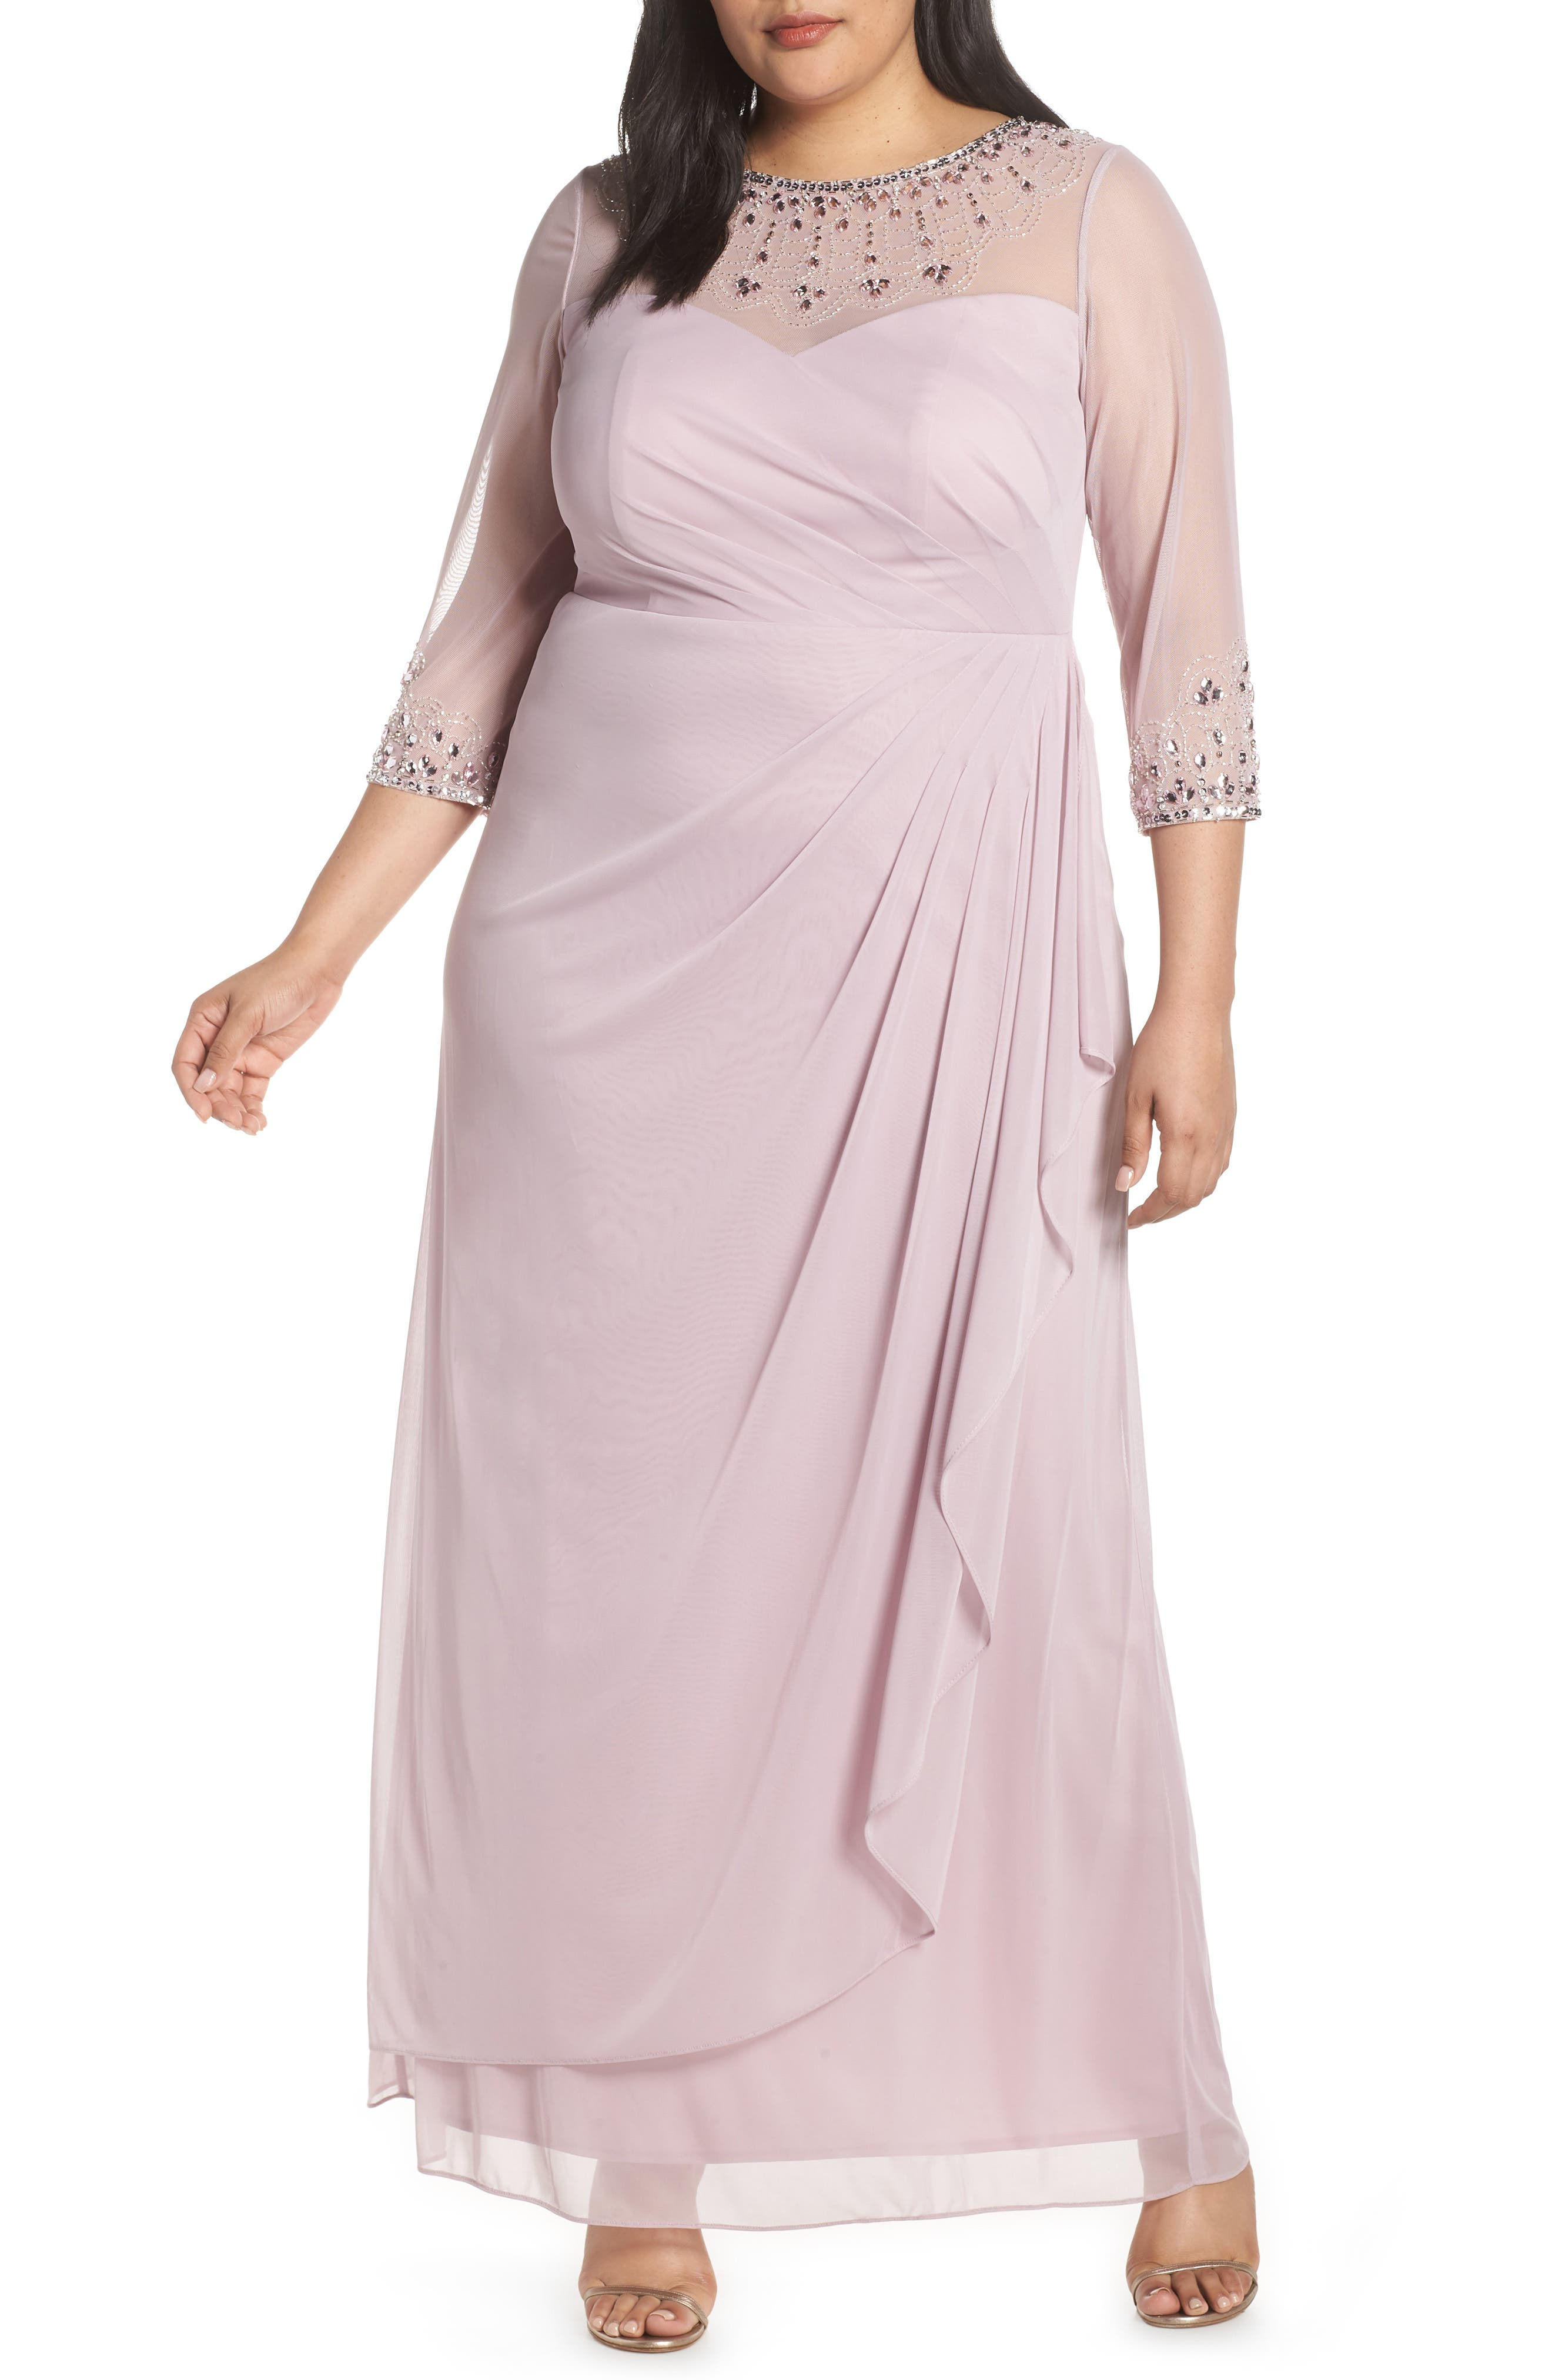 ALEX EVENINGS Beaded Illusion Neck A-Line Gown, Main, color, SMOKEY ORCHID